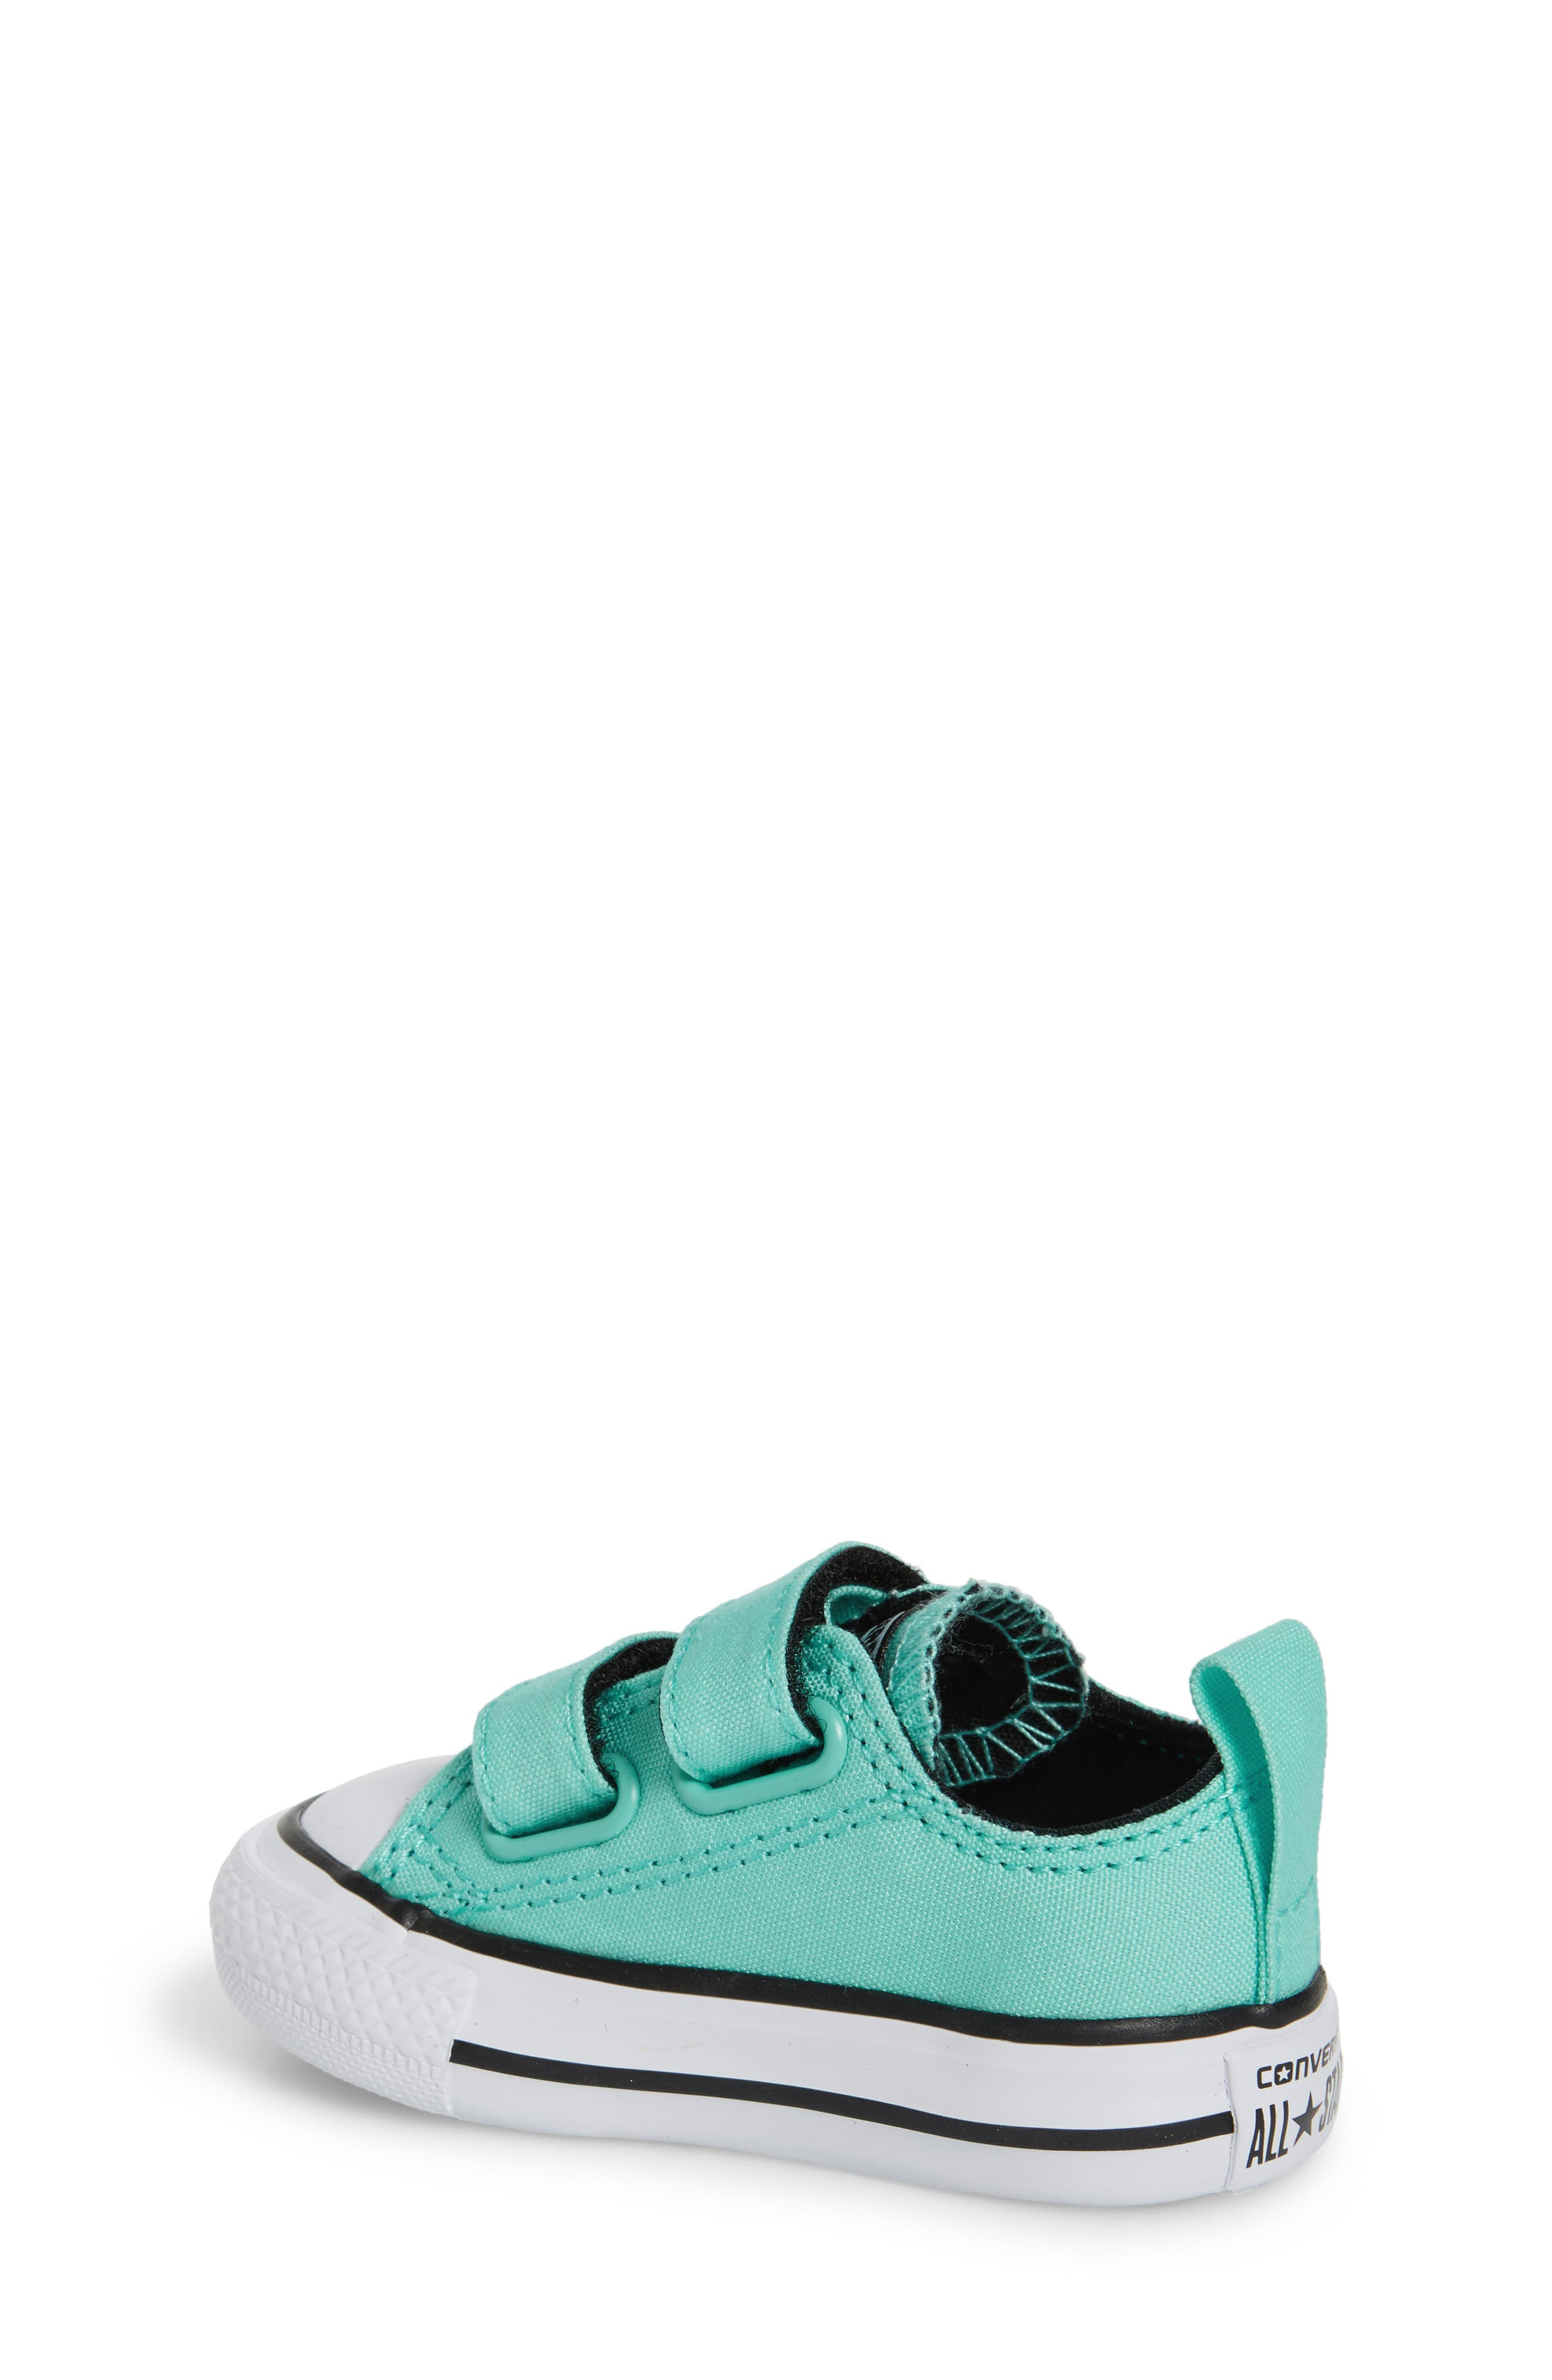 Chuck Taylor<sup>®</sup> All Star<sup>®</sup> 2V Low-Top Sneaker,                             Alternate thumbnail 2, color,